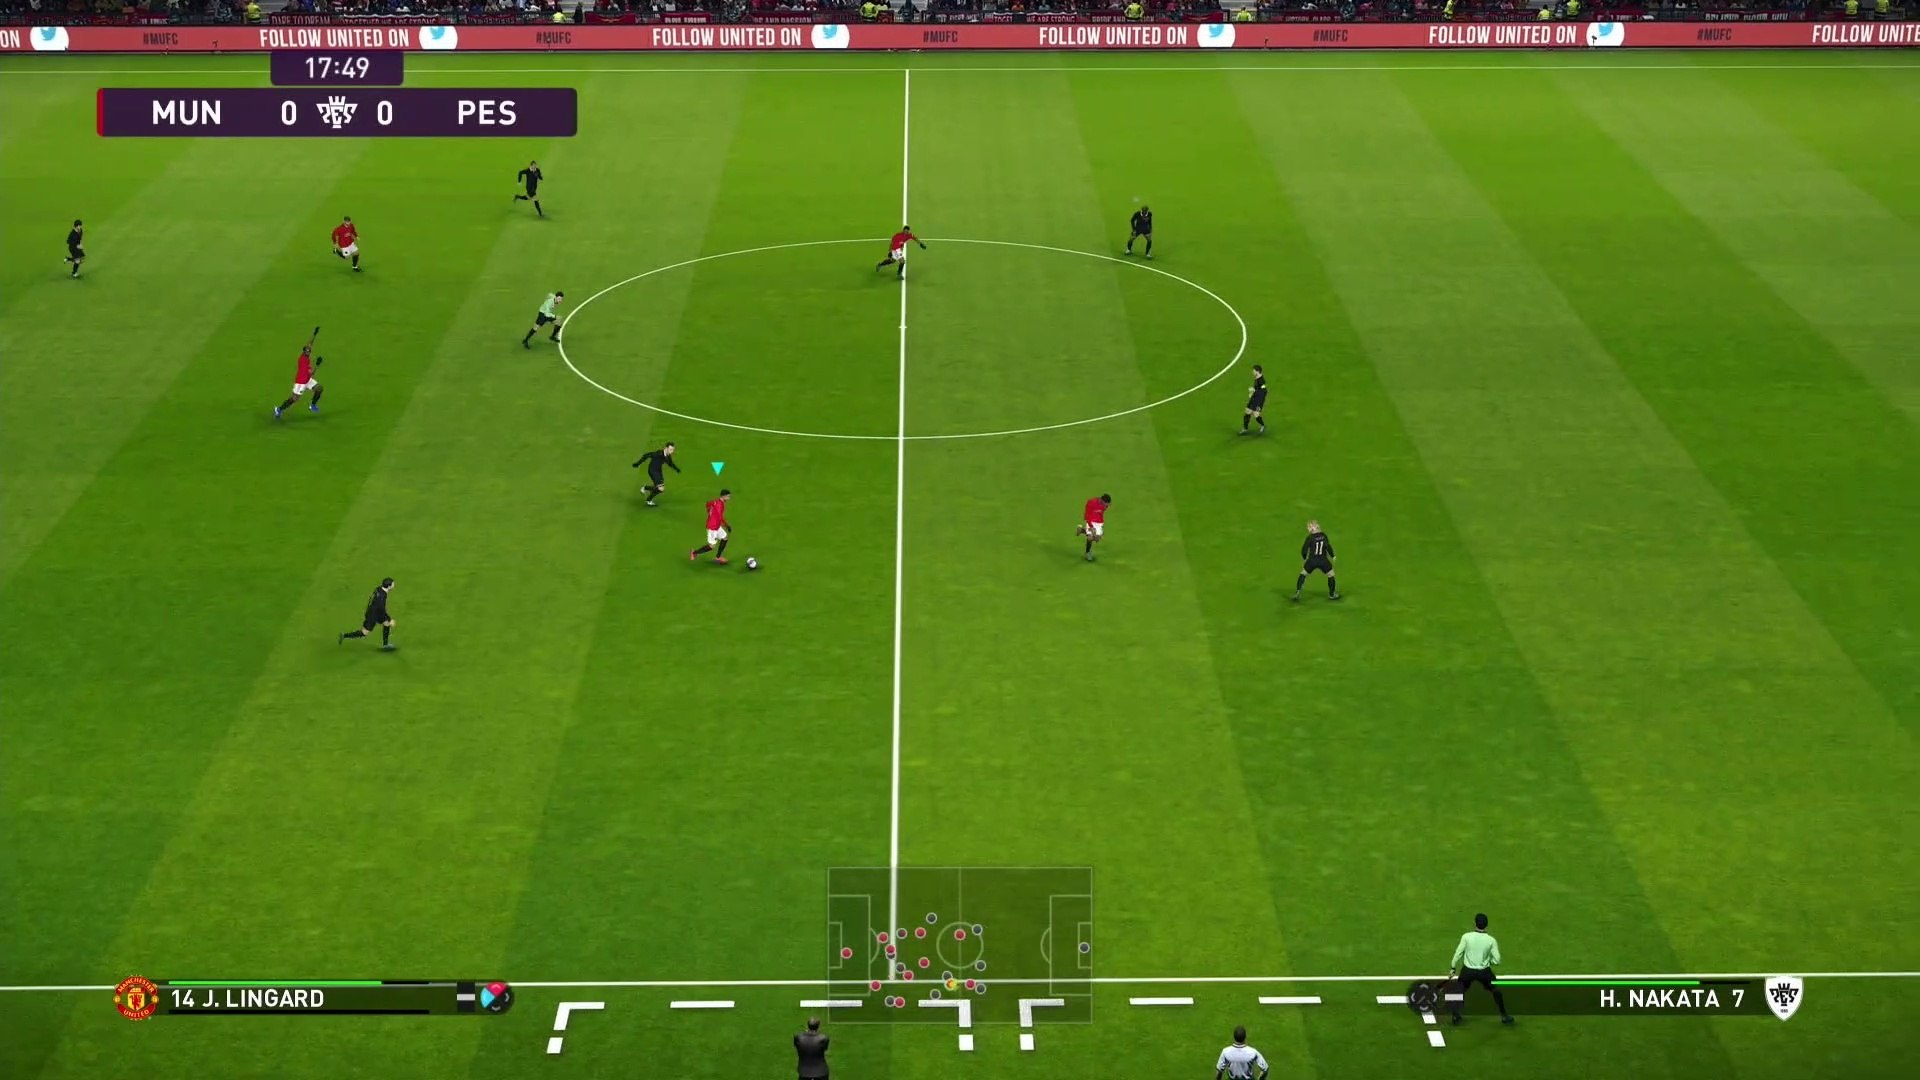 PES 19 Mobile Realistic Gameplay with English Commentary